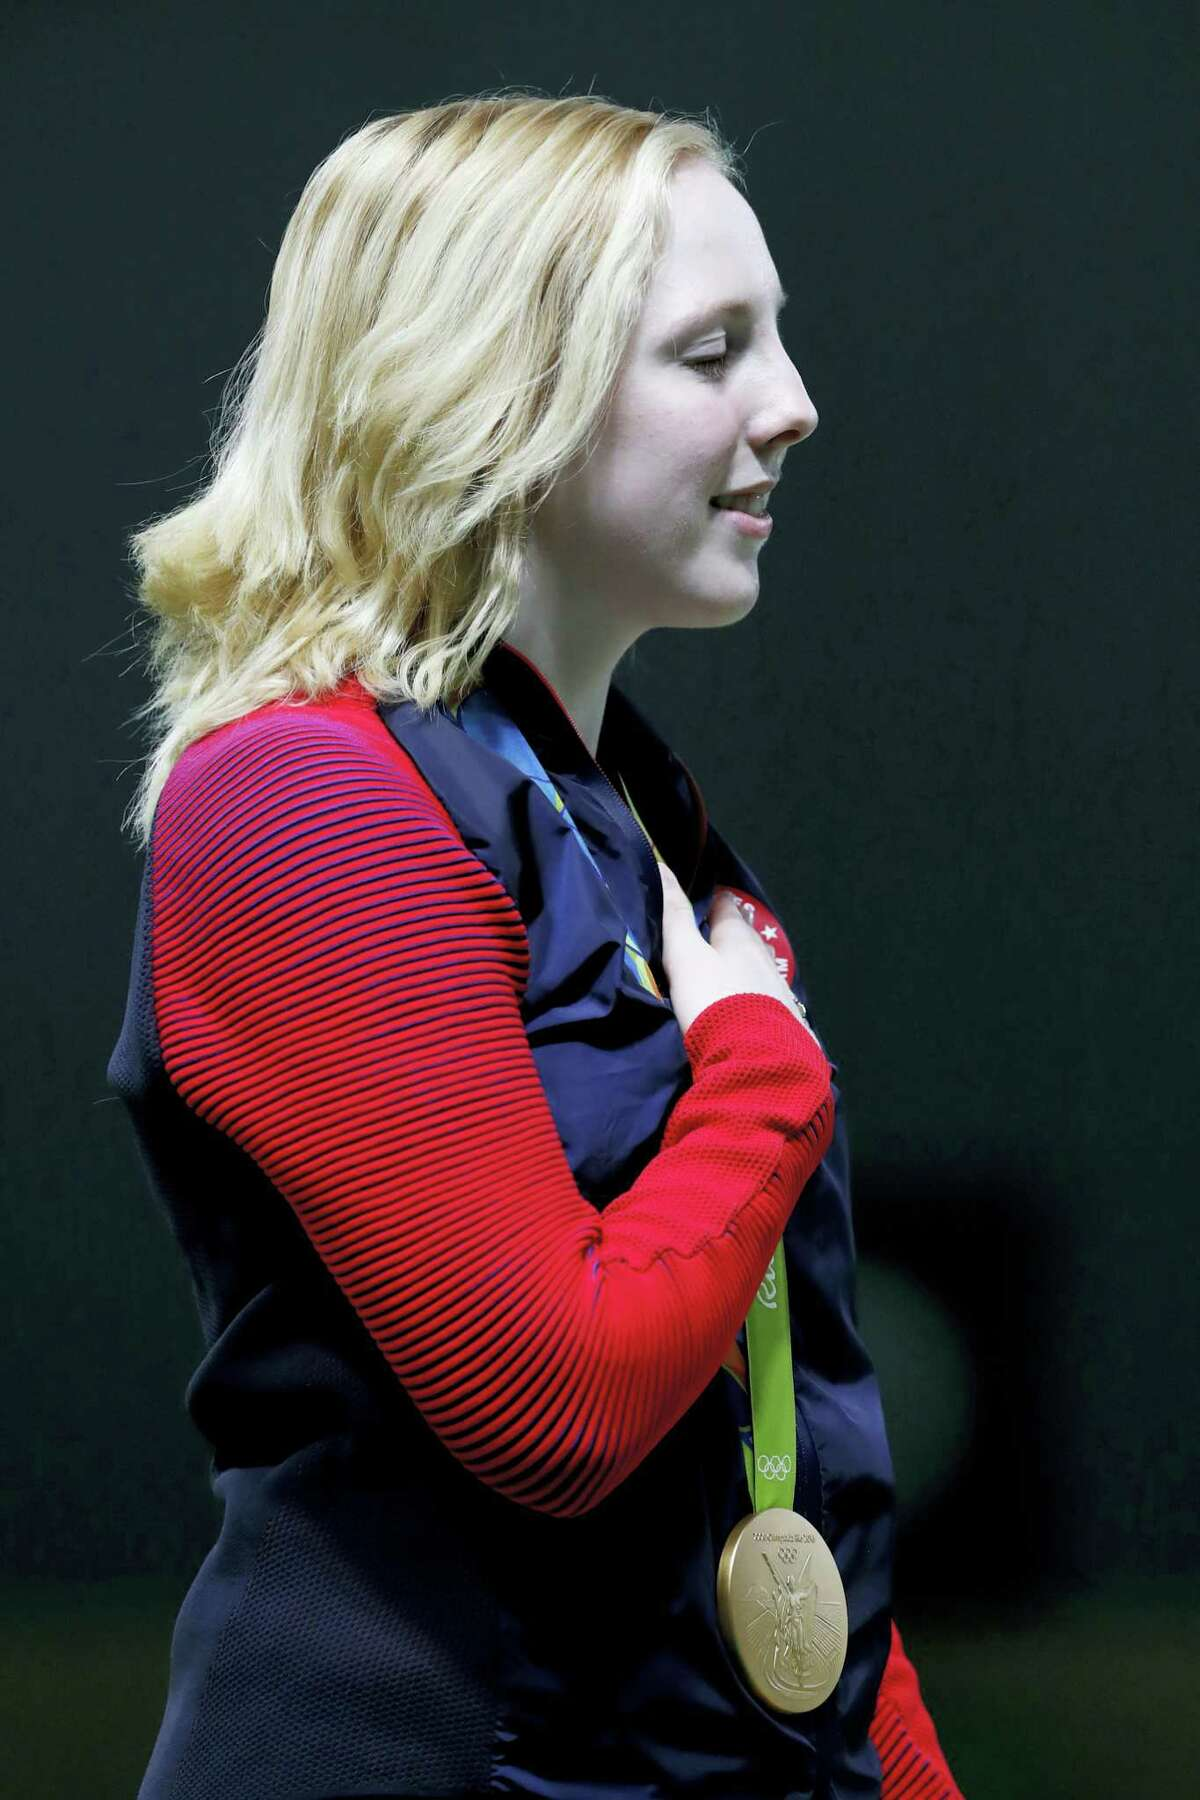 Gold medal winner, Virginia Thrasher of the United States, sings along with the U.S. national anthem after receiving the gold medal during the victory ceremony for the Women's 10m Air Rifle event at Olympic Shooting Center at the 2016 Summer Olympics in Rio de Janeiro on Saturday.